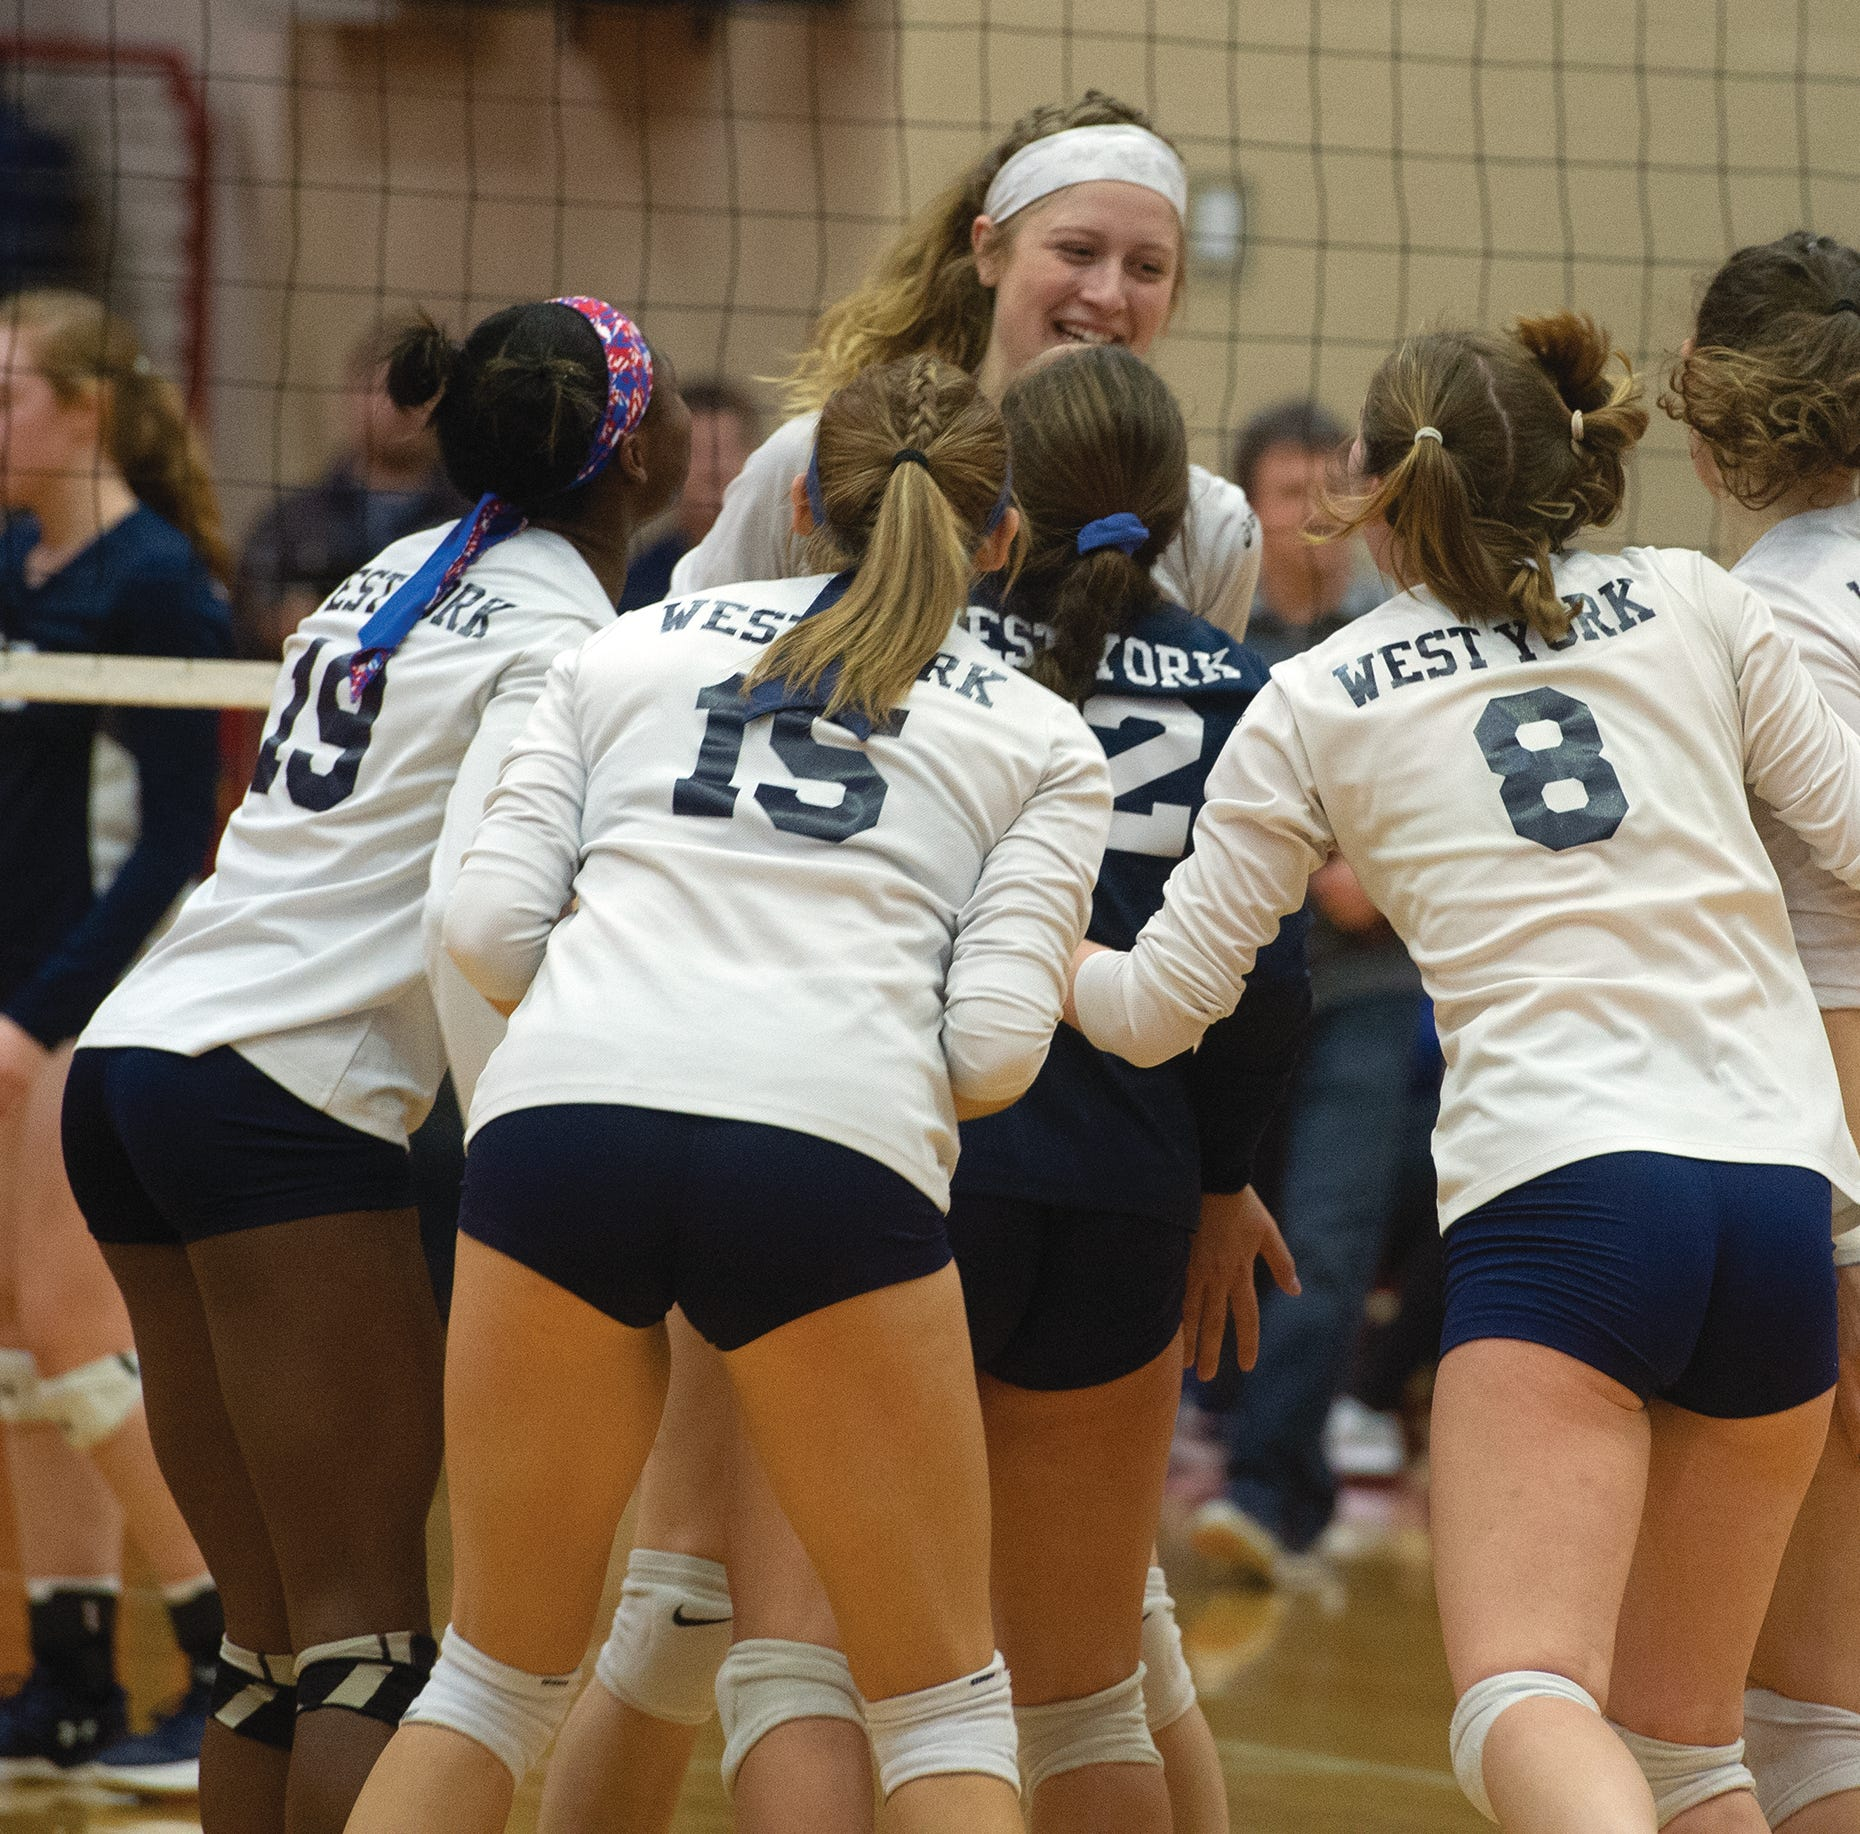 'I never expected any of this': West York girls' volleyball claims first state title